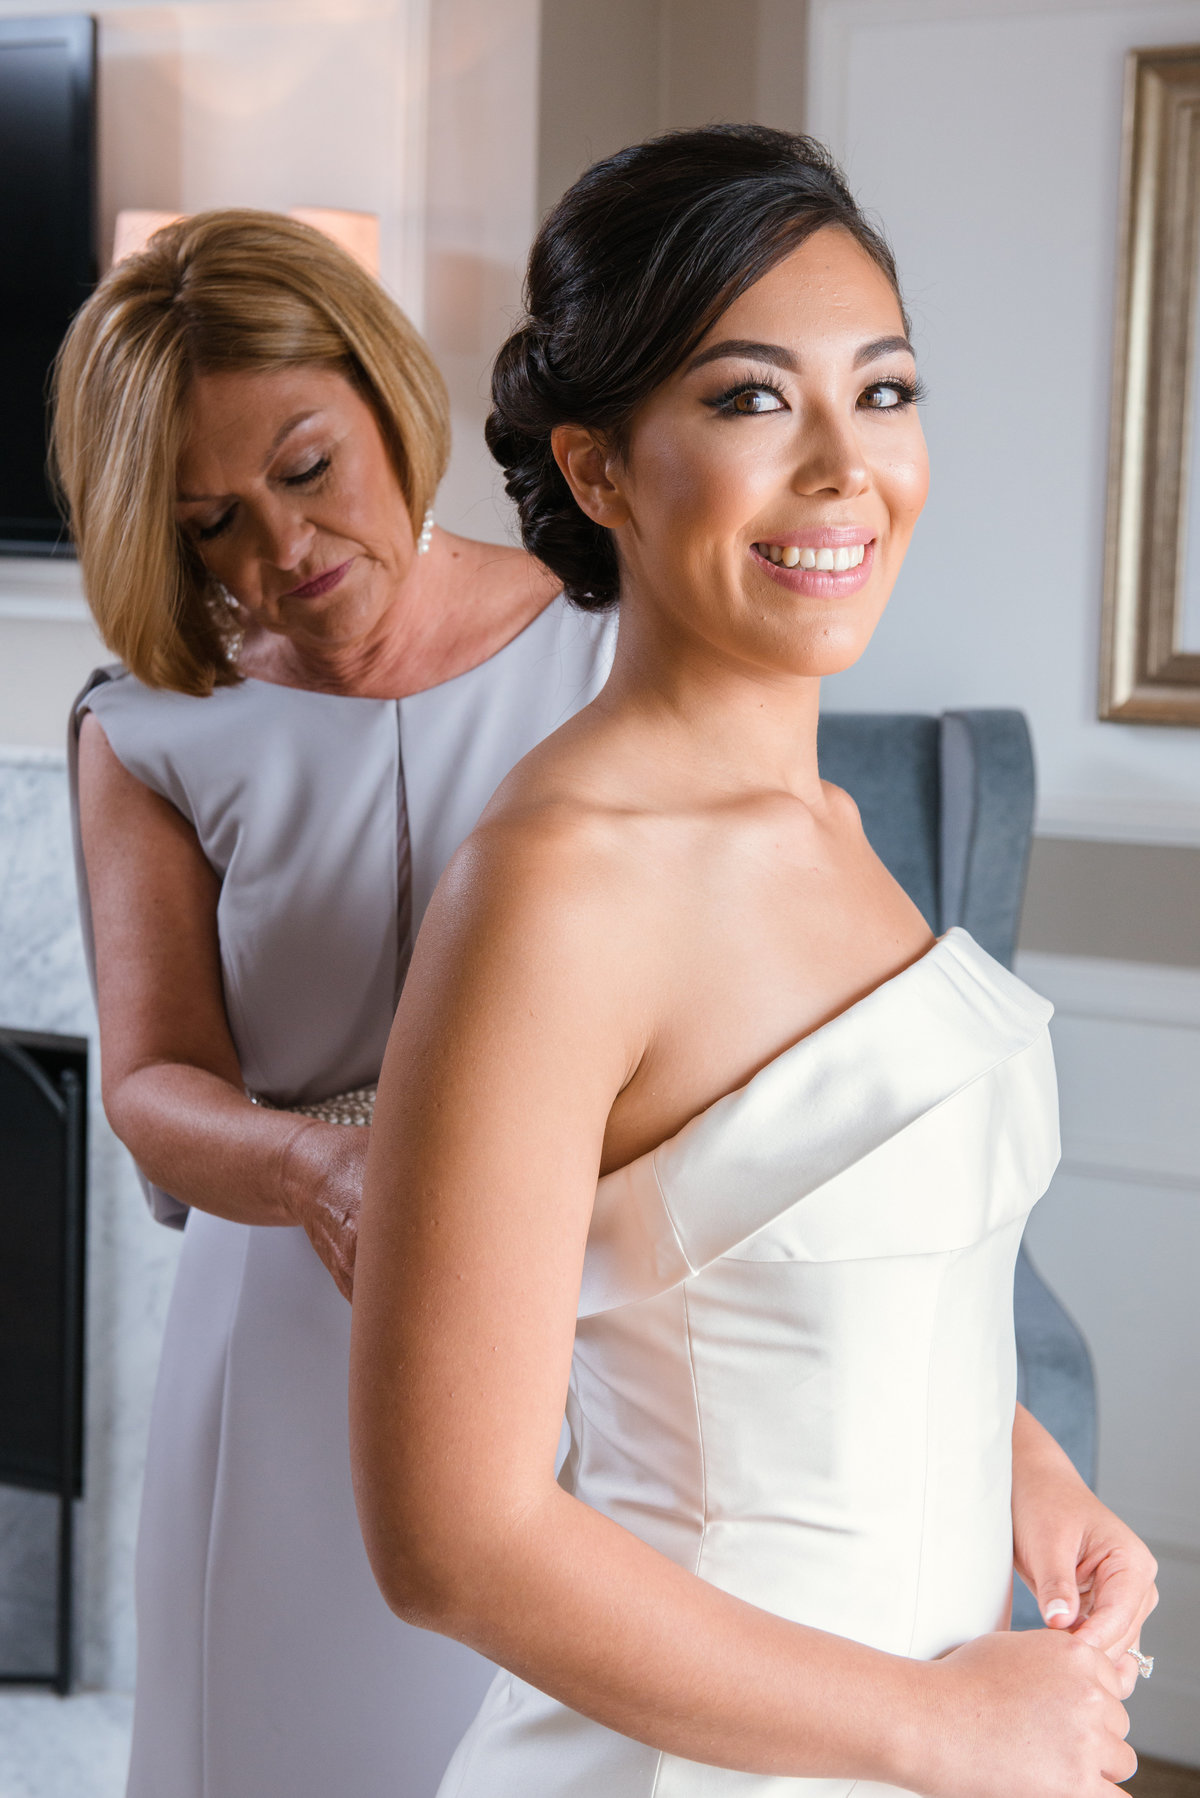 wedding photo of mom helping bride with dress at The Garden City Hotel